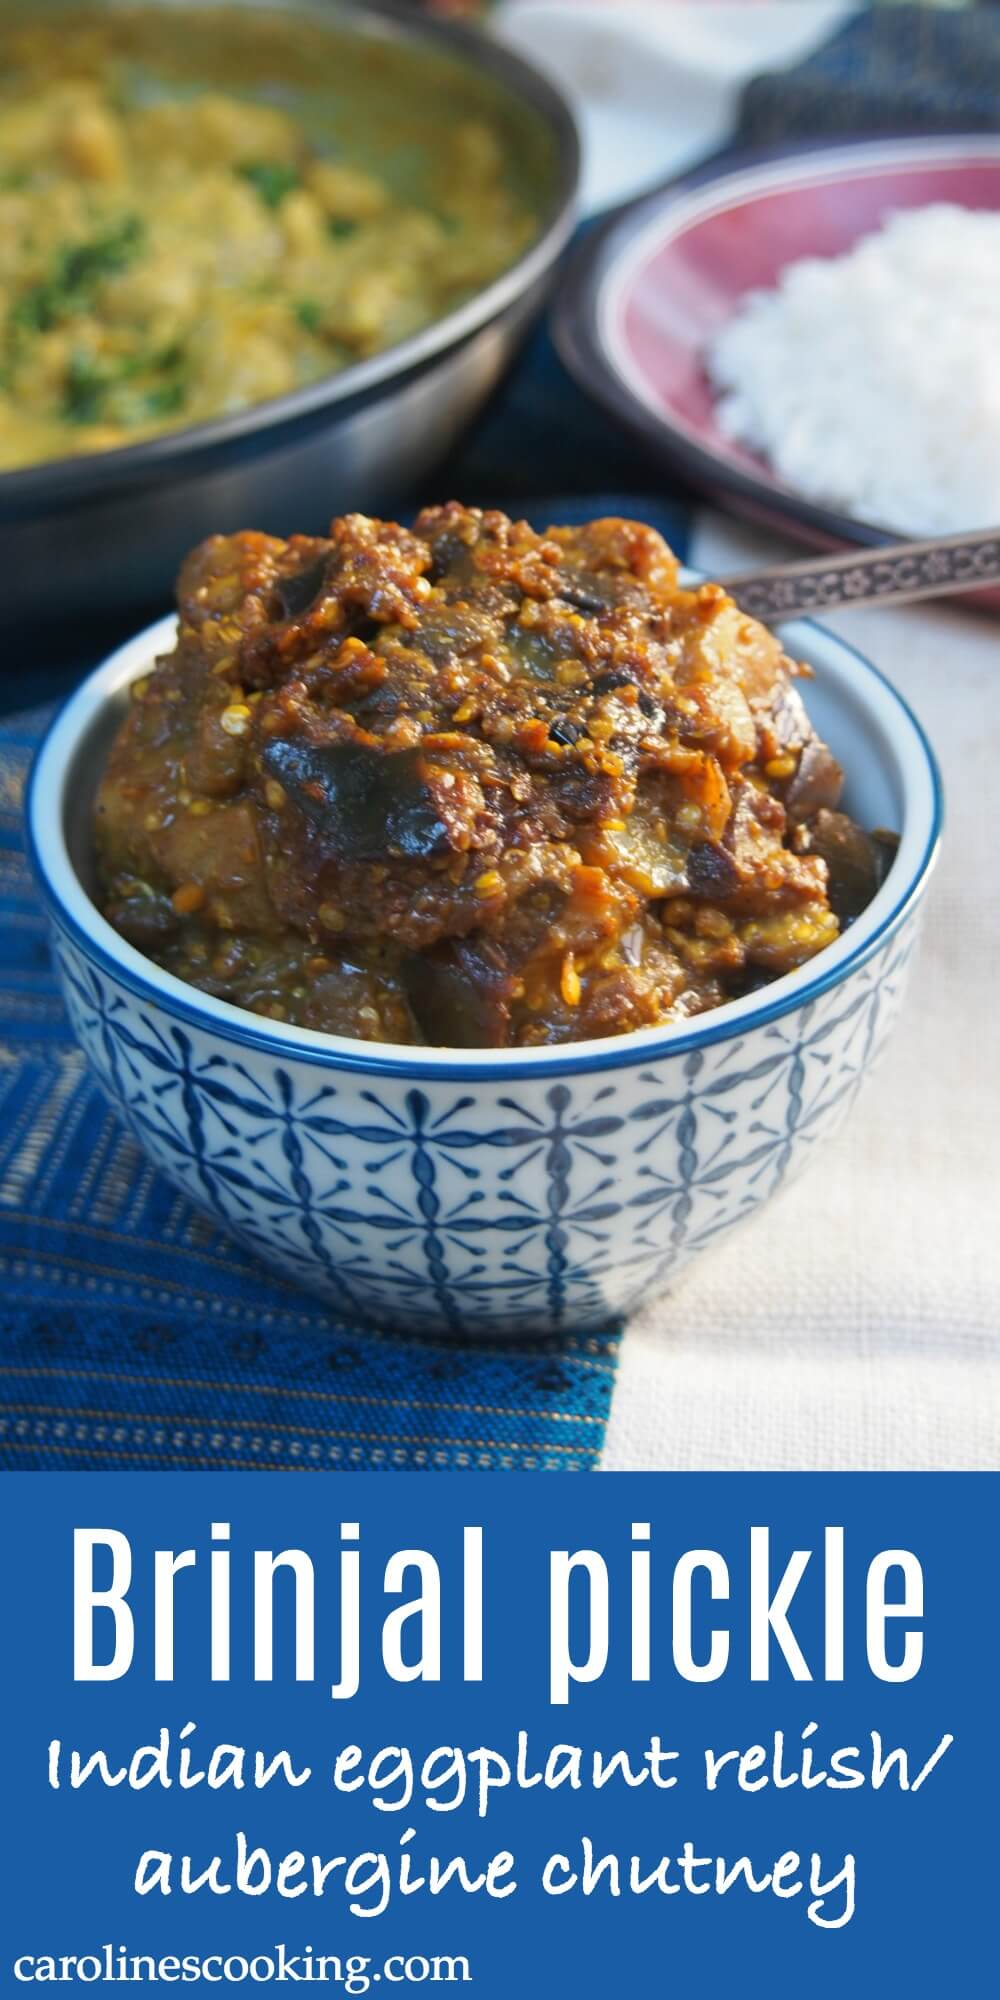 Brinjal pickle (eggplant relish/aubergine chutney) is a classic Indian condiment that is the perfect addition to any curry. Slightly sweet & spicy, it's also easy to make and a great way to use up an excess of eggplant. #eggplant #Indianfood #chutney